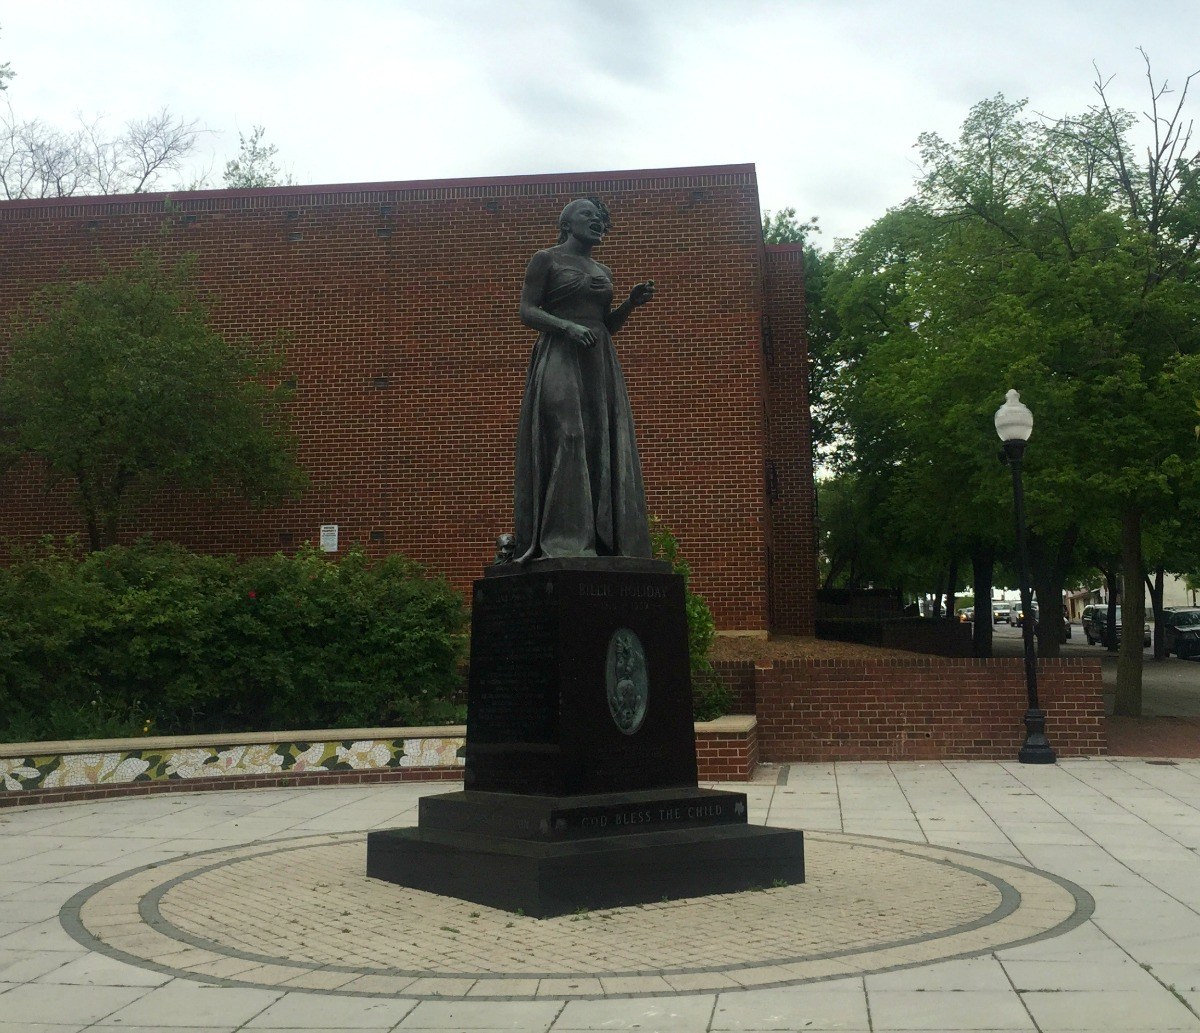 The Billie Holiday statue in Baltimore